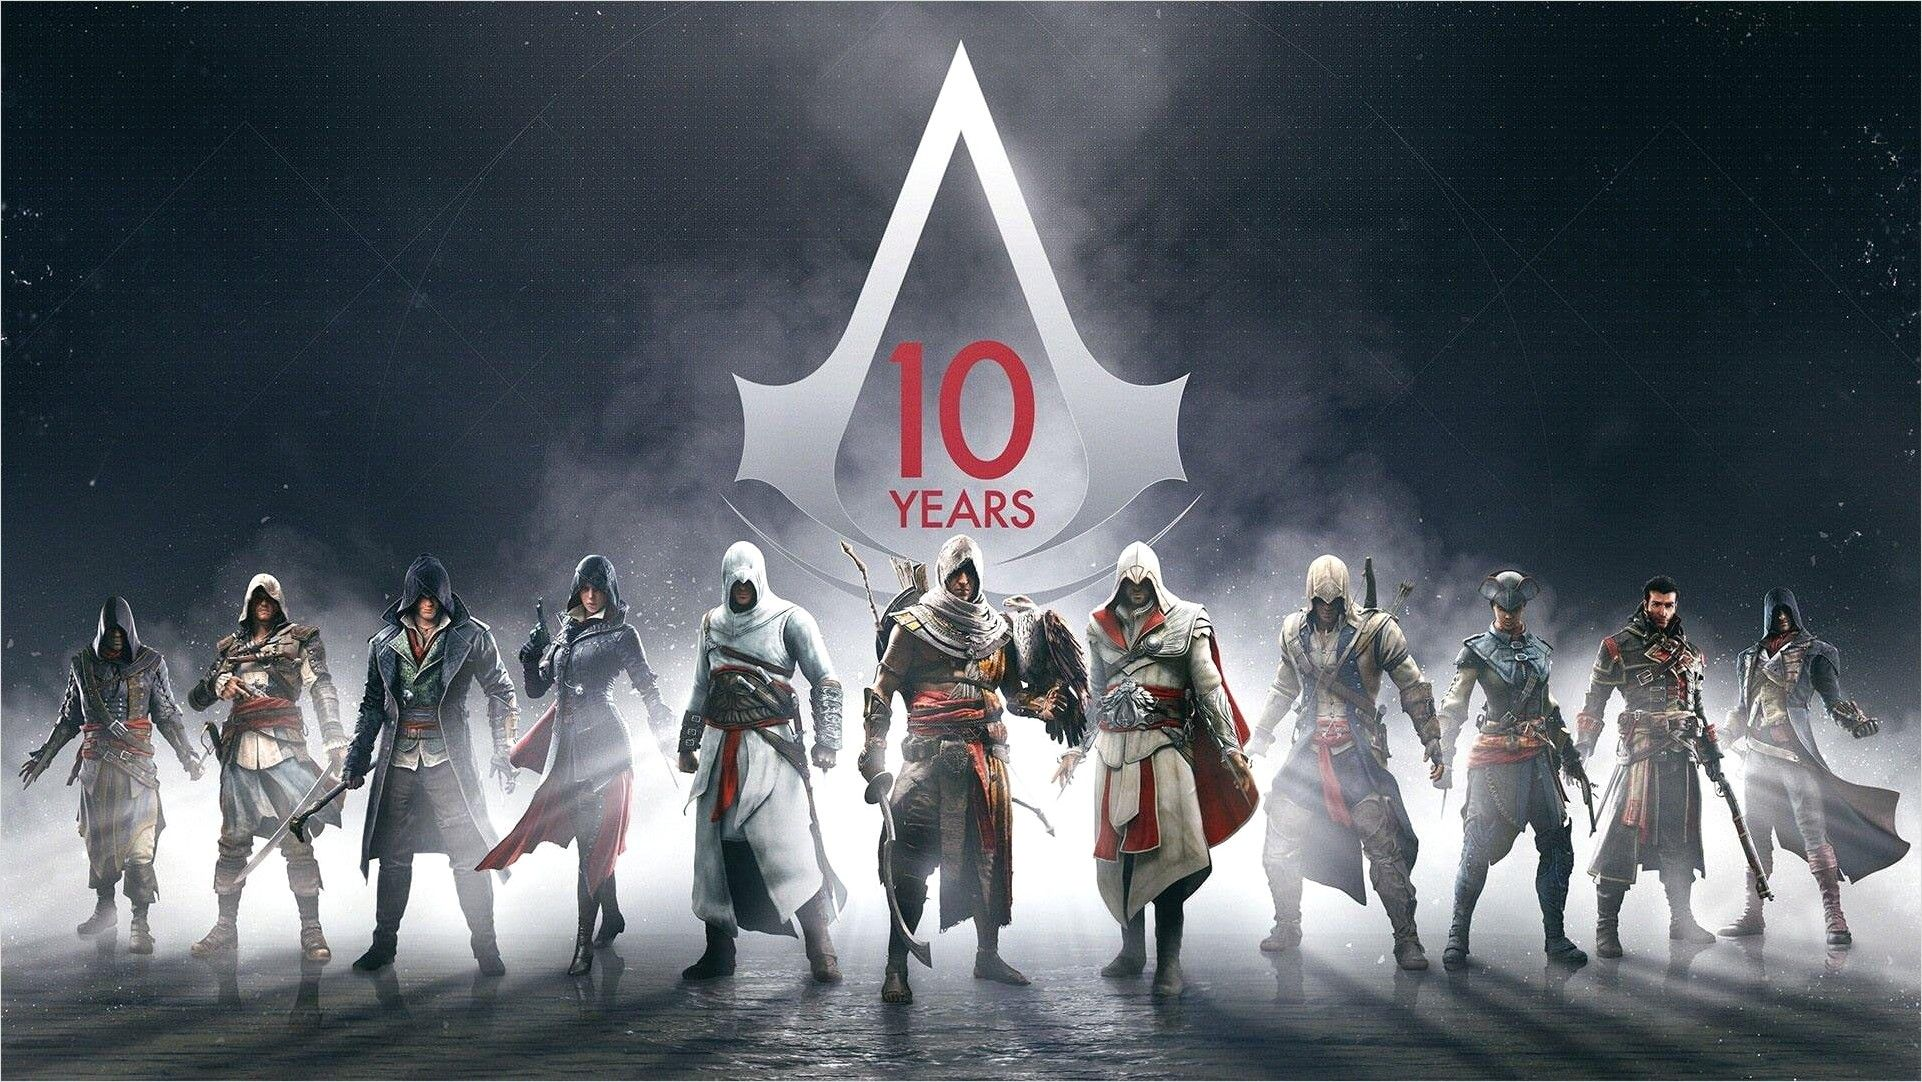 4k Wallpaper Assassins Creed All Characters In 2020 Assassins Creed Assassin S Creed Assassins Creed Game